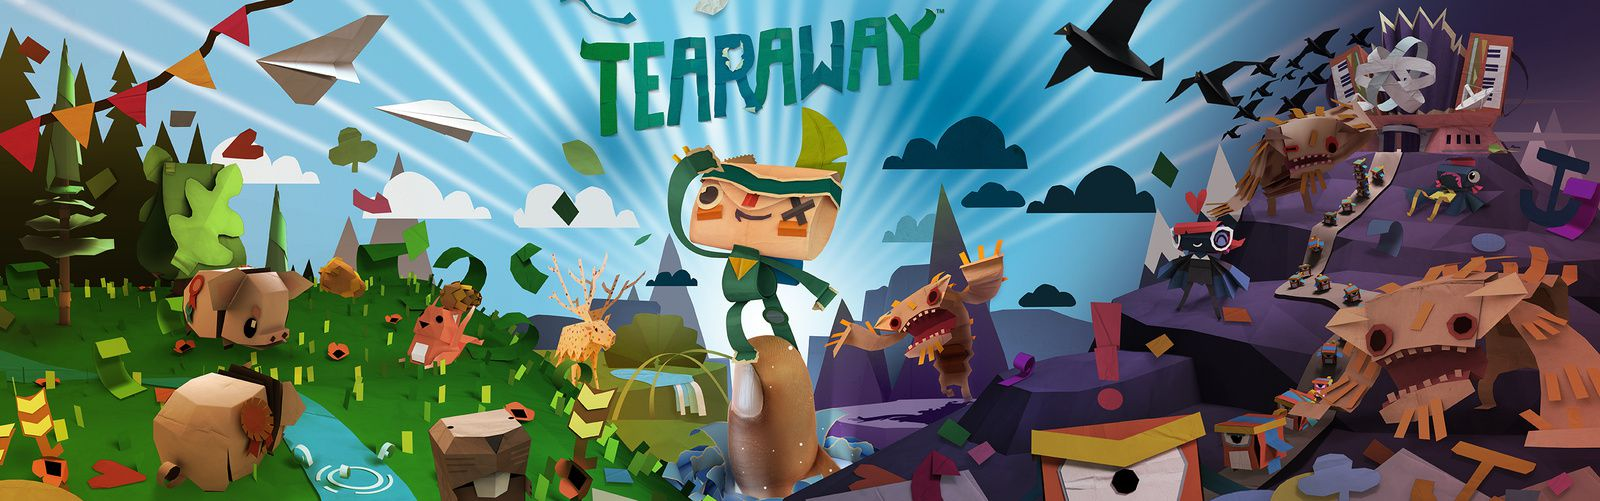 [GC2014] Tearaway arrive sur PS4